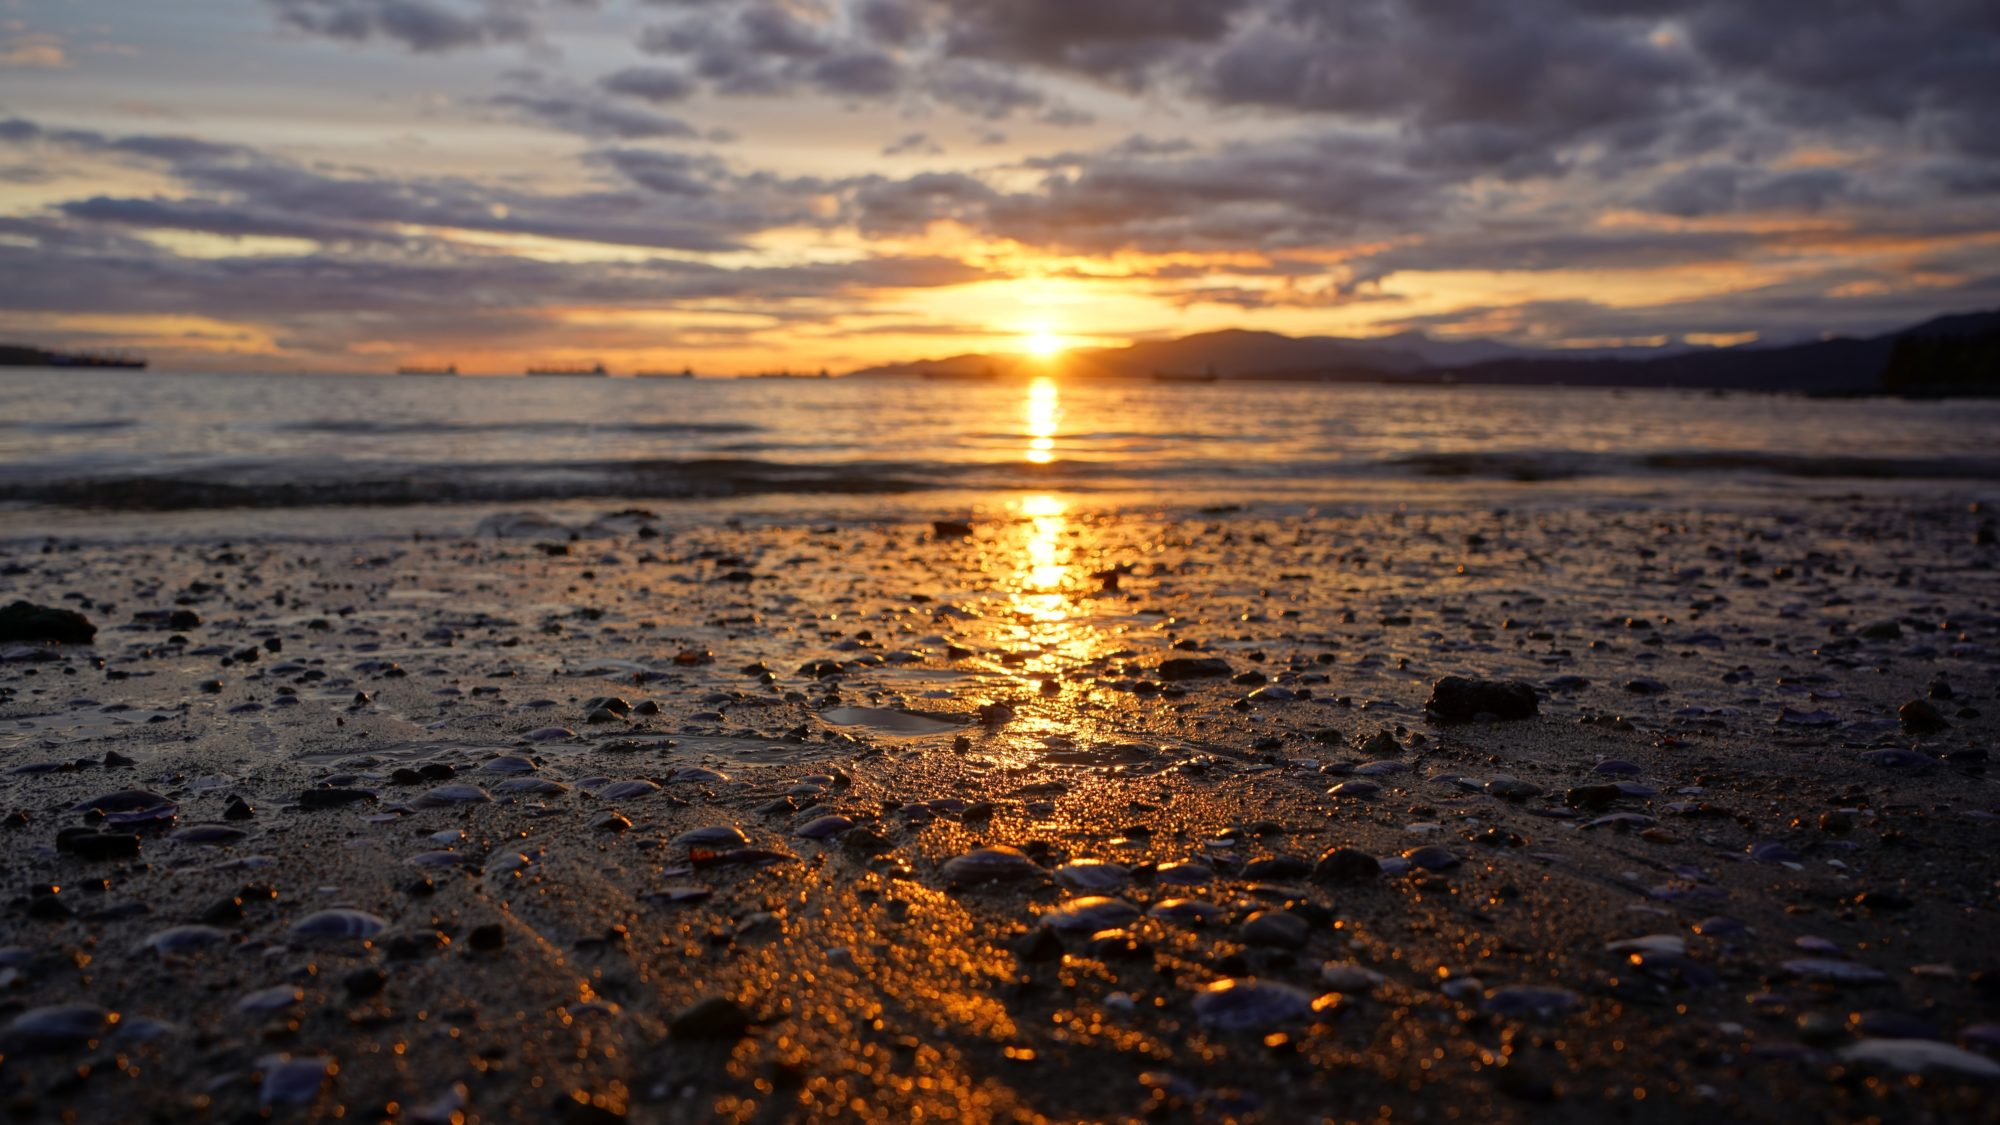 Sunset reflected on low tide beach